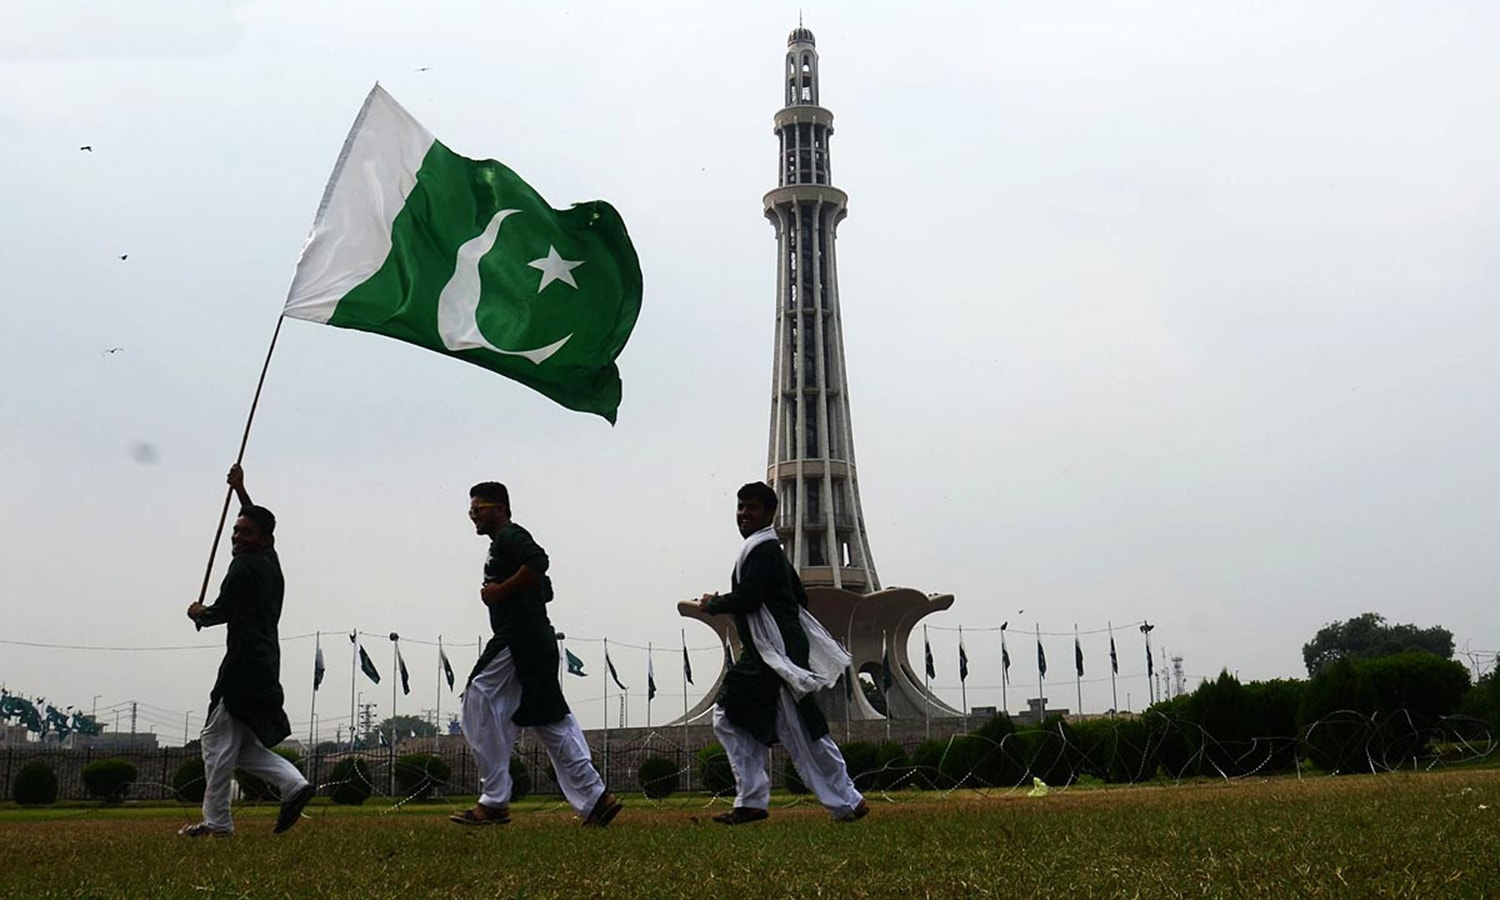 Pak PM dedicates Independence Day to freedom movement in Kashmir